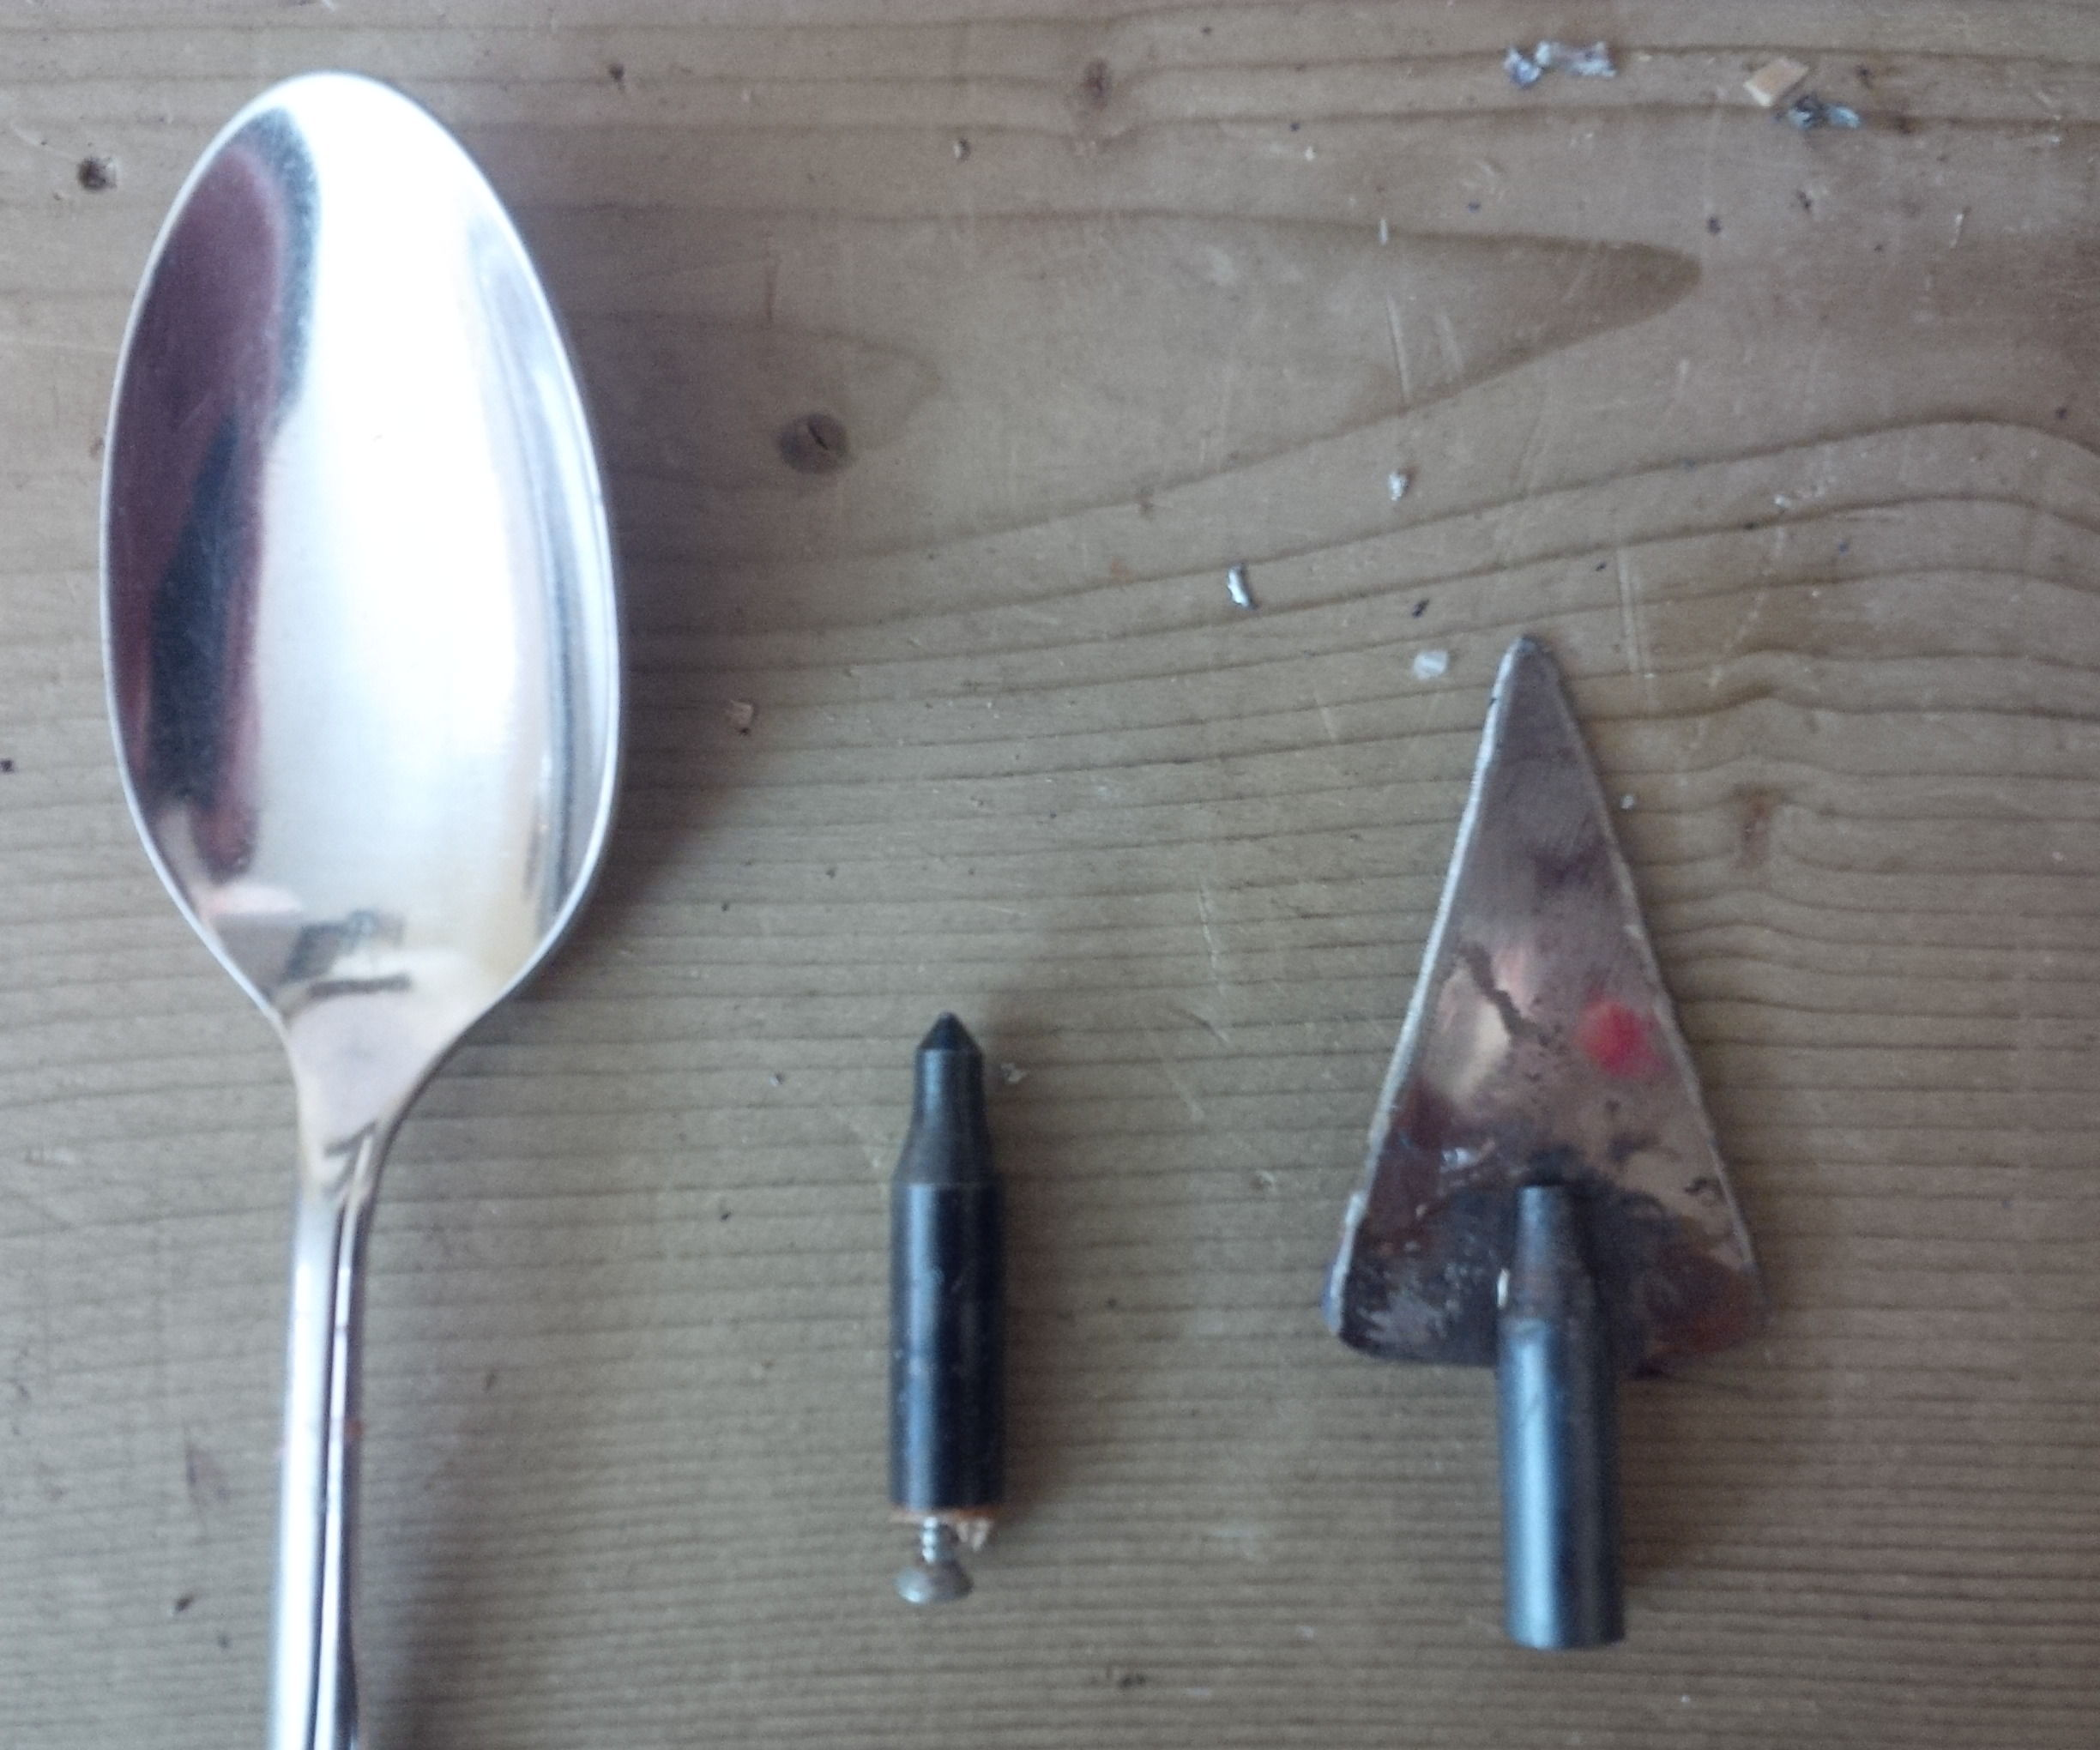 From spoon to broadhead